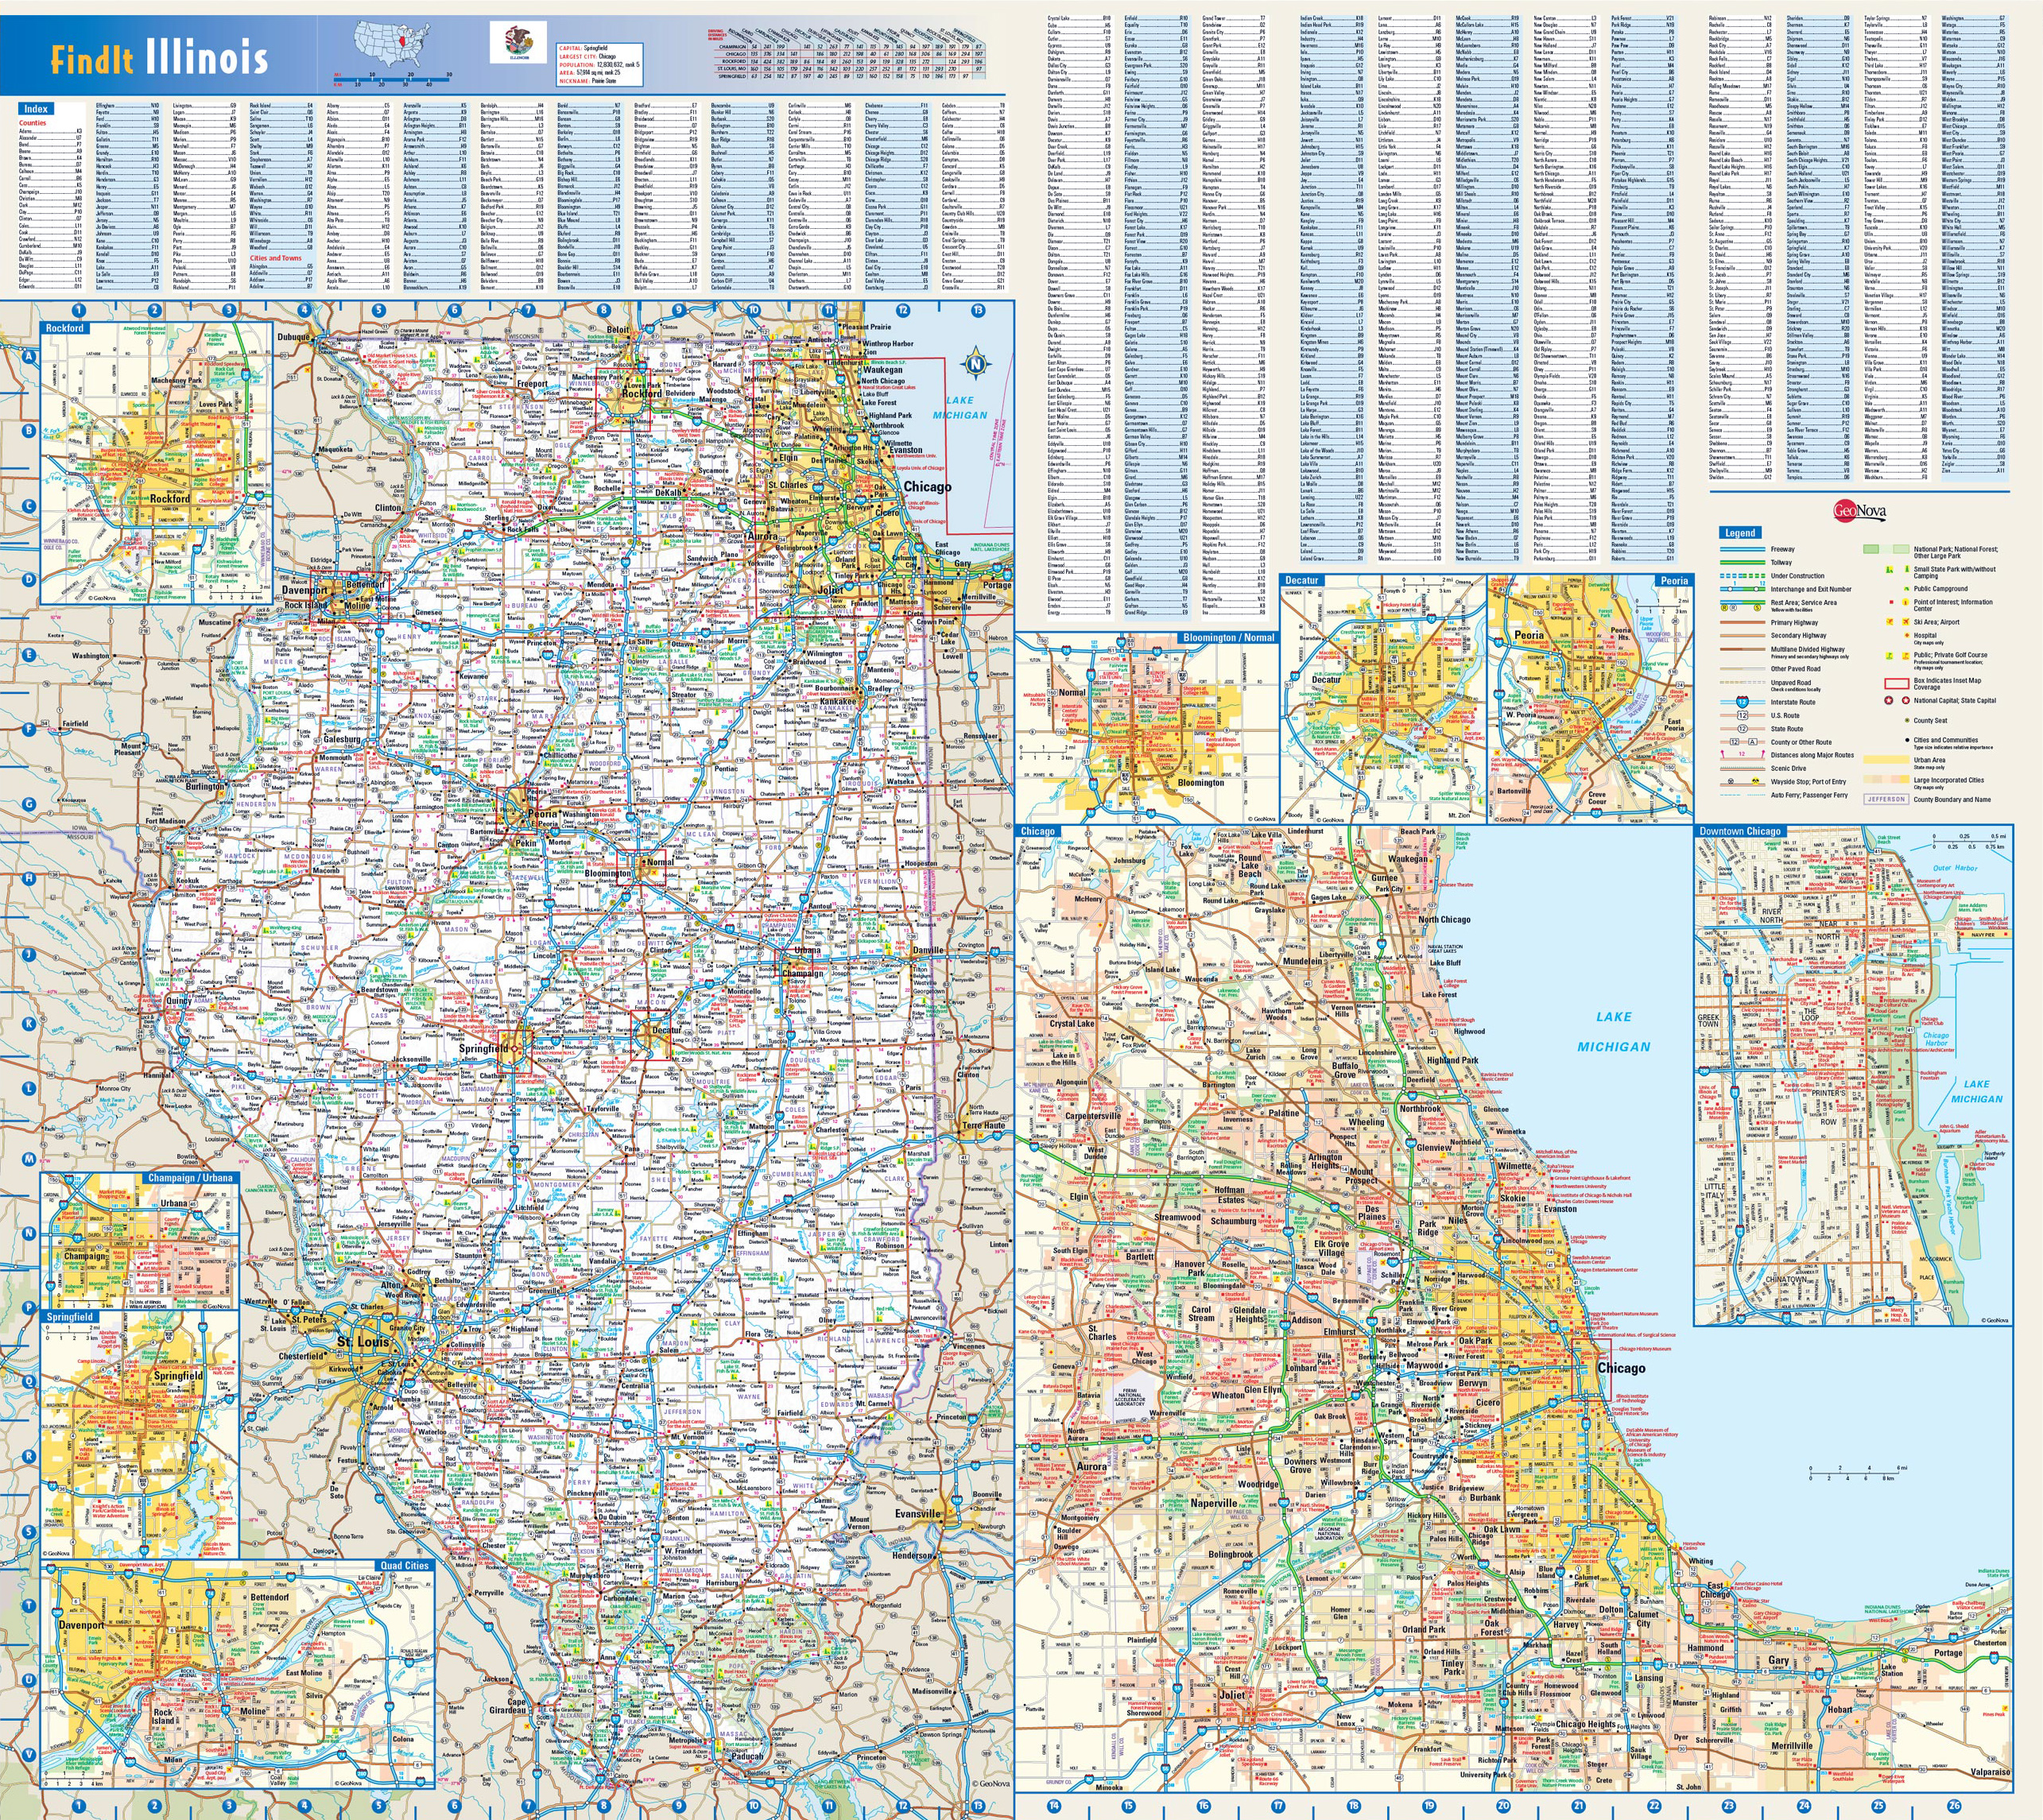 Large Roads And Highways Map Of Illinois State With National Parks - Illinois usa map